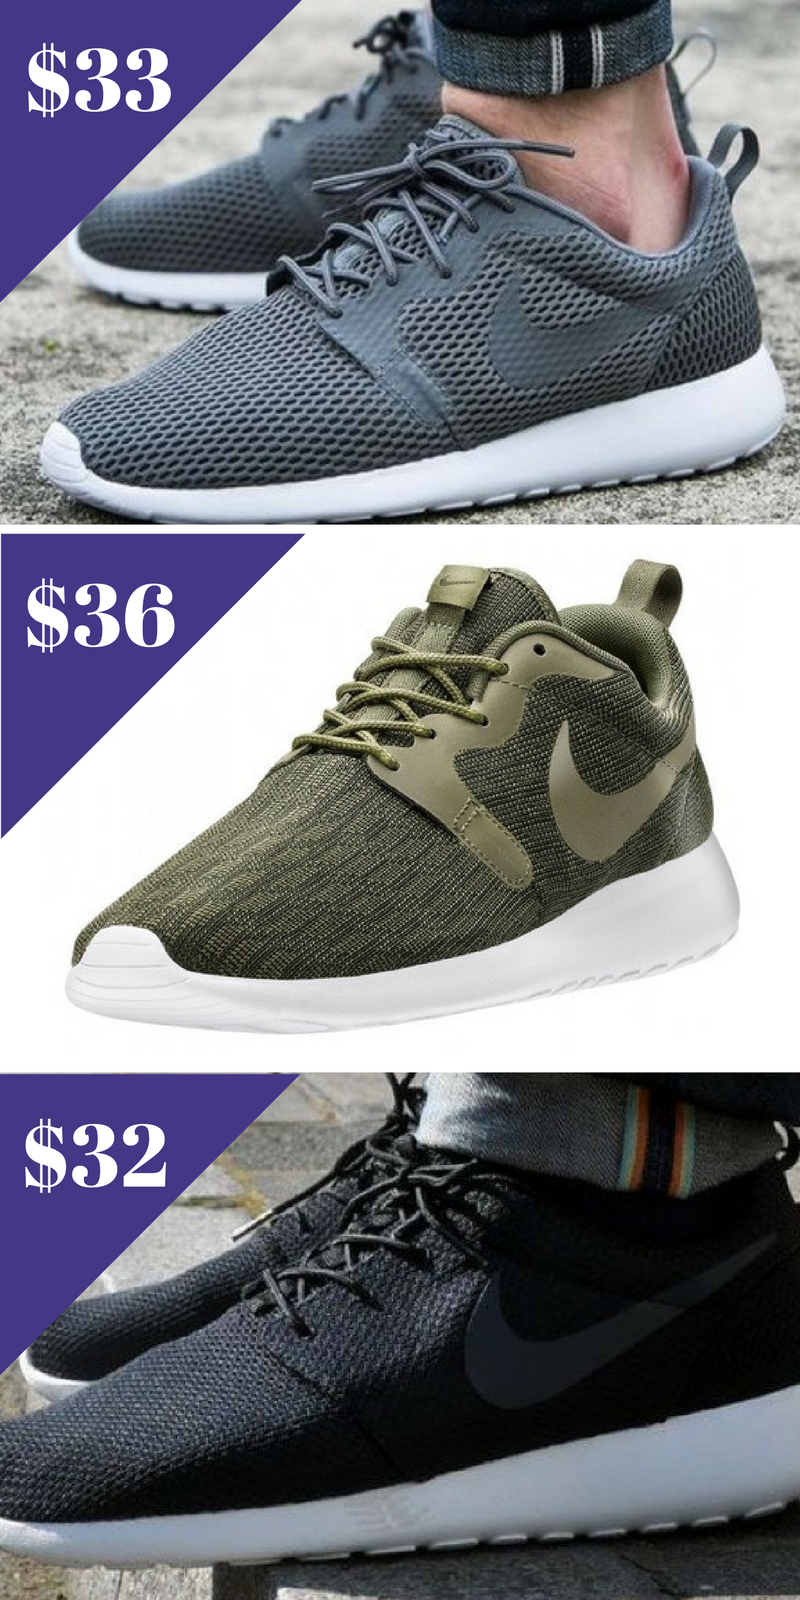 6af816542c62 Download Poshmark now to find great deals on Nike products